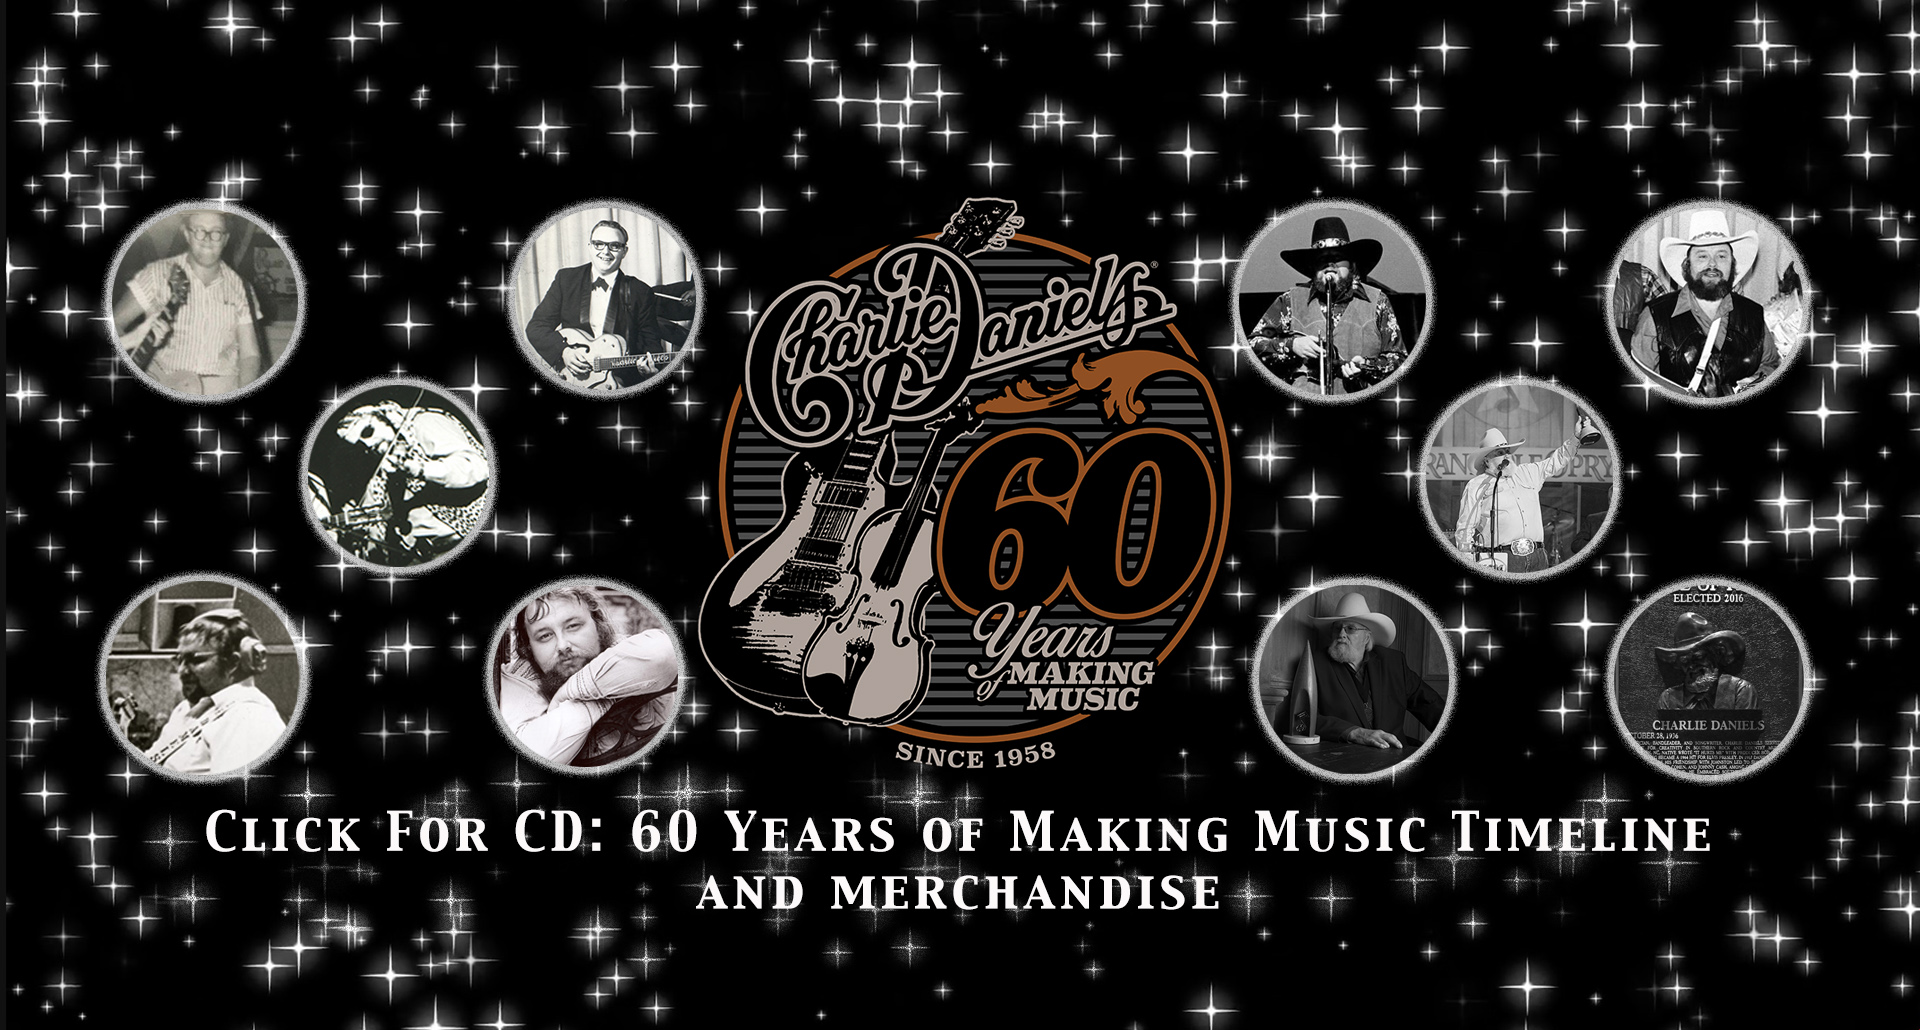 CD 60 Years of Making Music